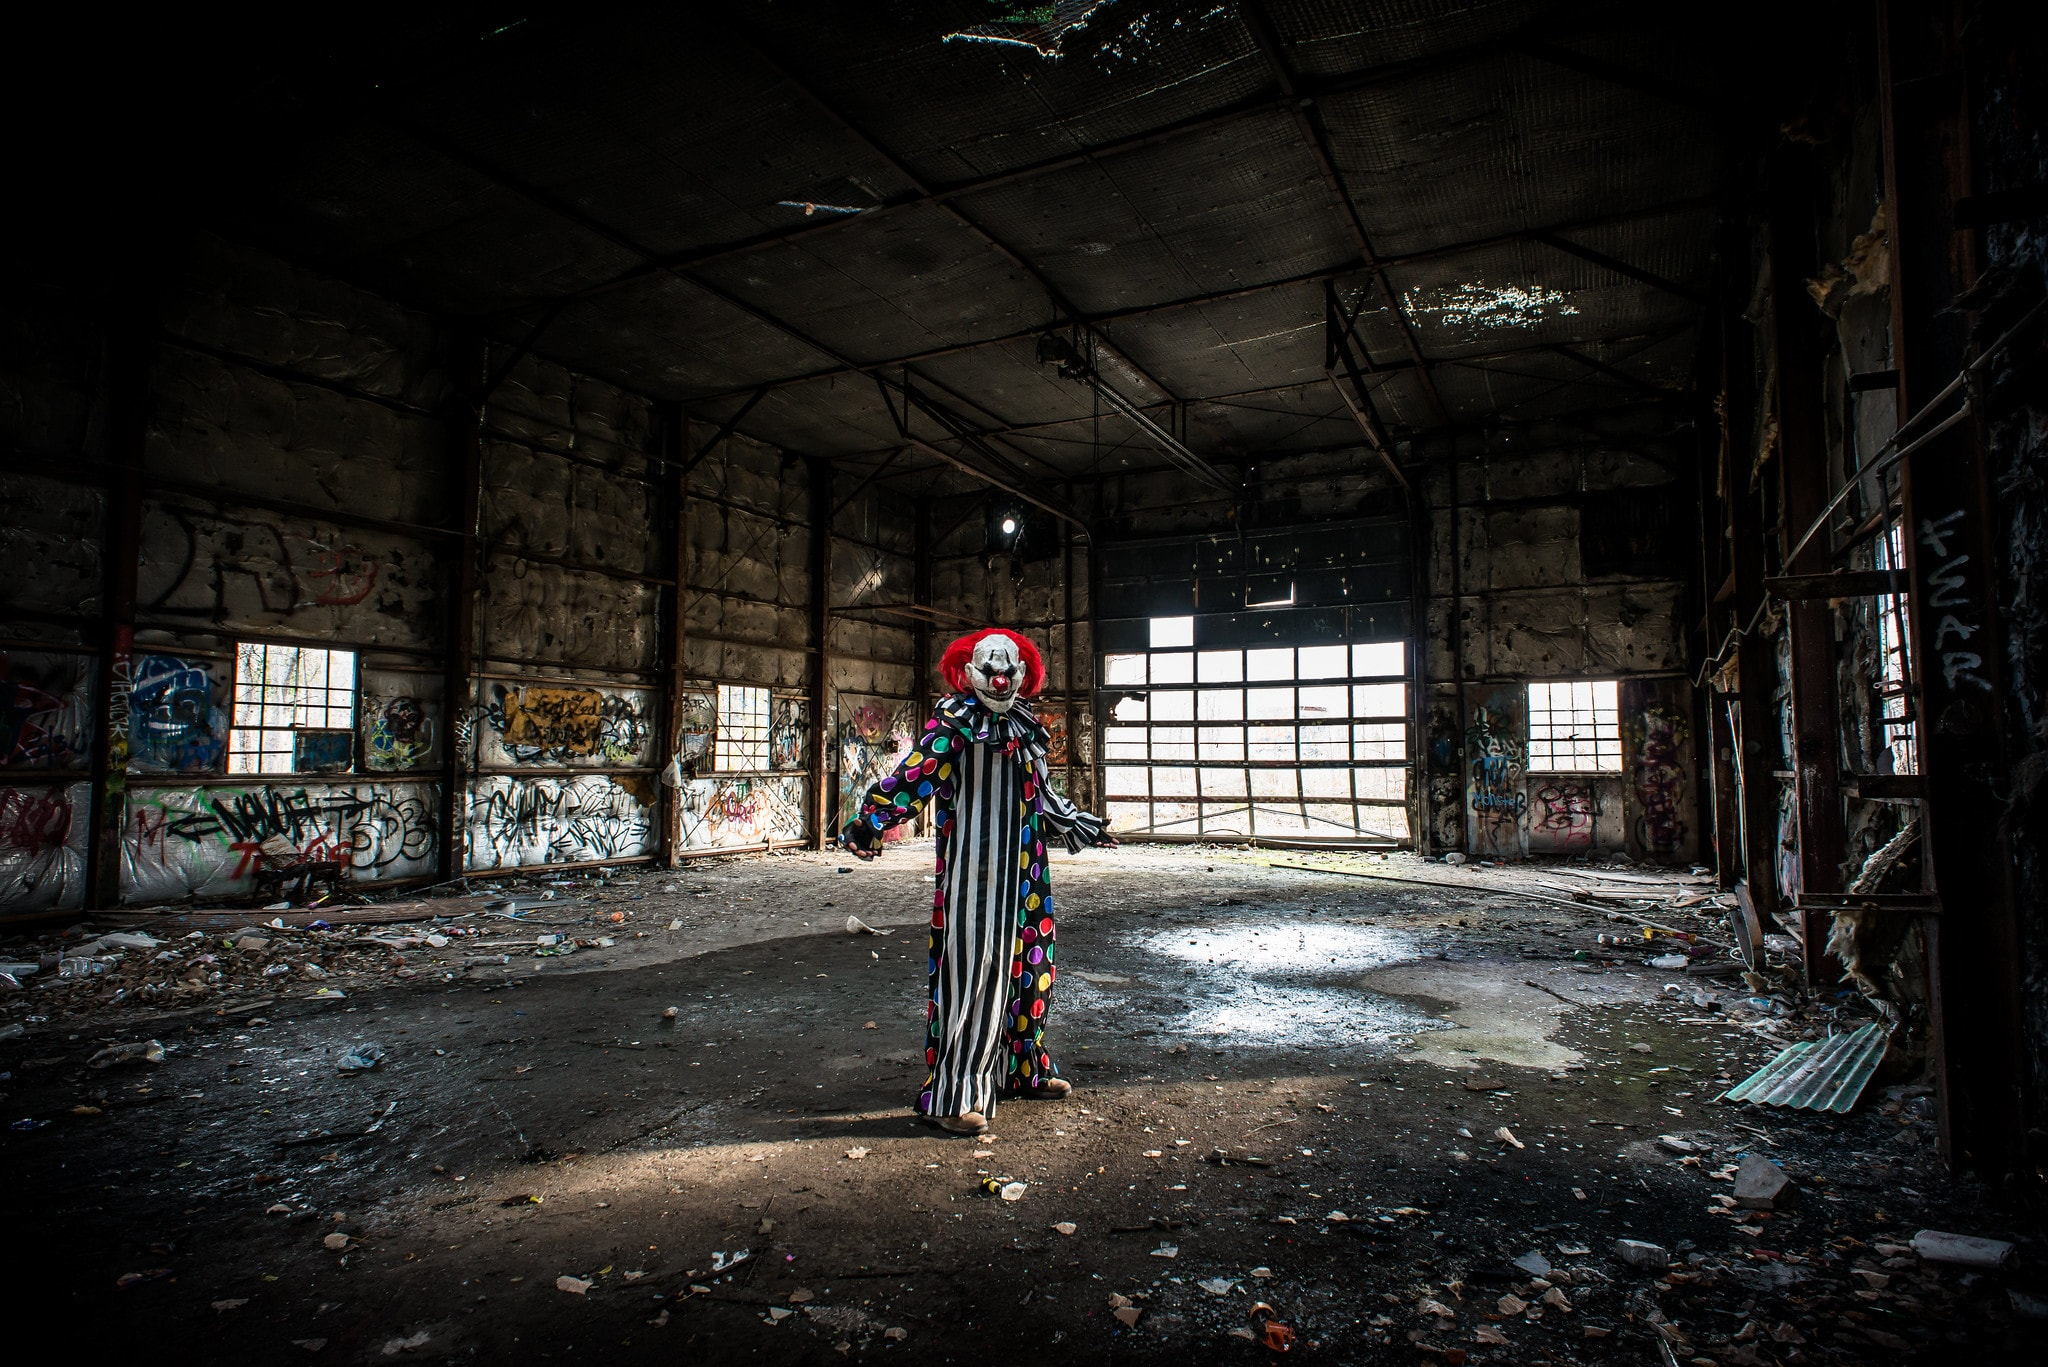 A scary clown in an abandoned building